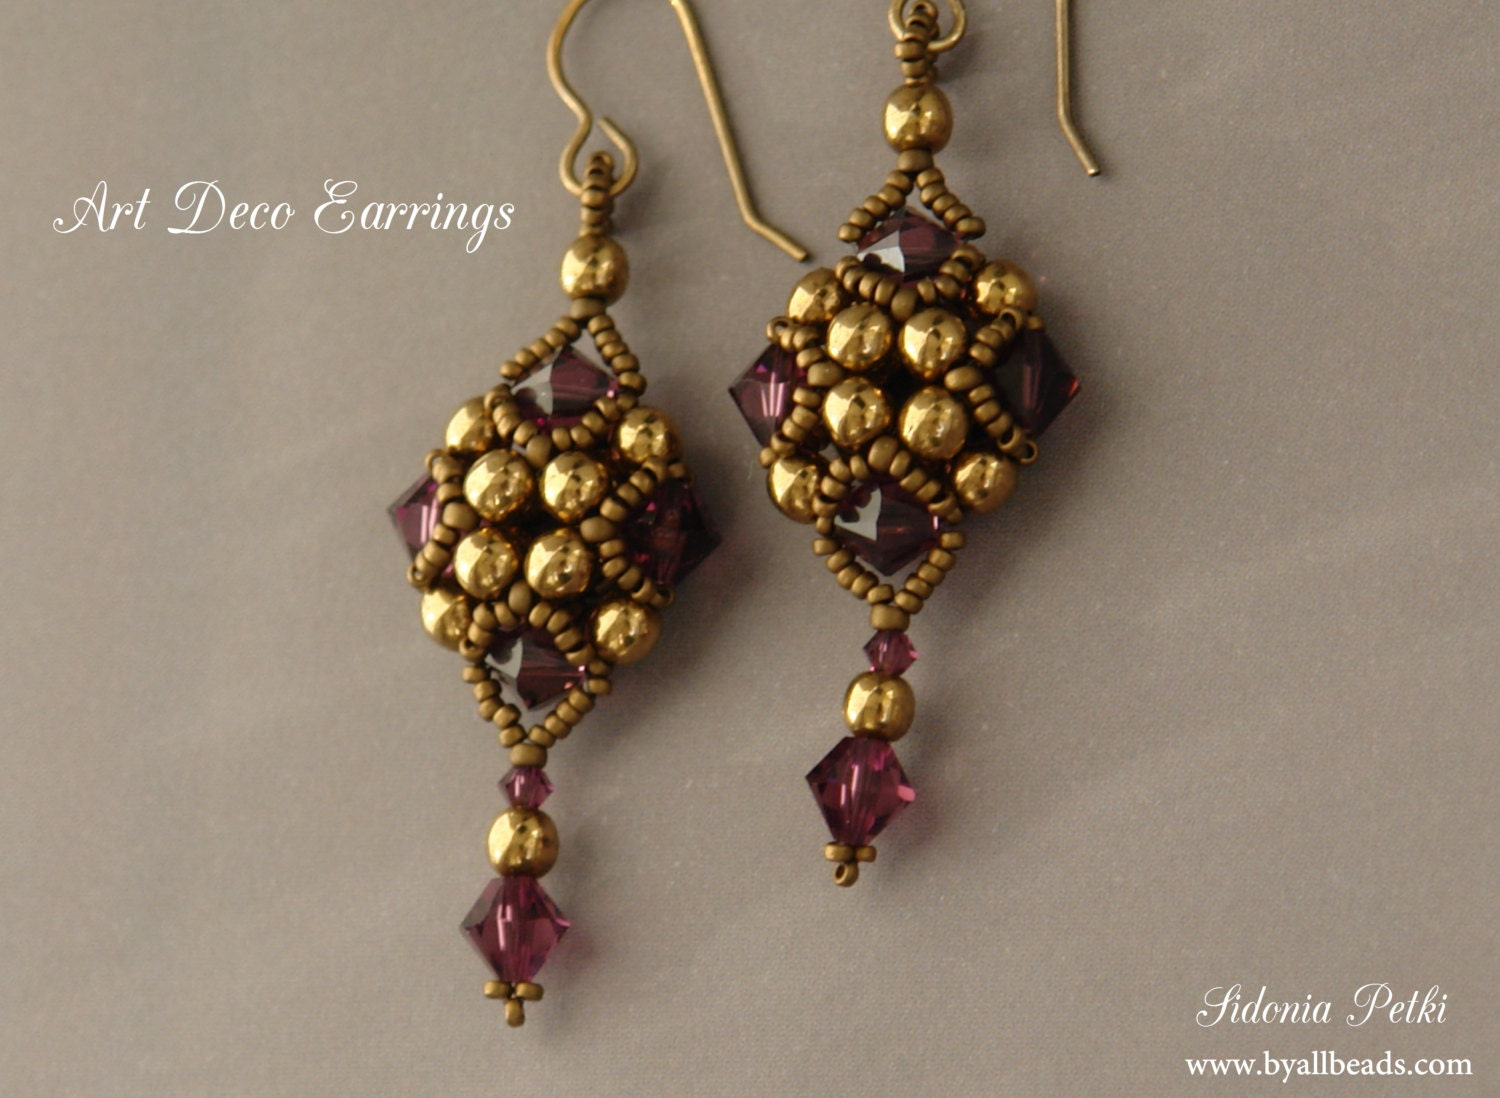 Beaded Earrings Tutorial Art Deco Style Earrings Beading